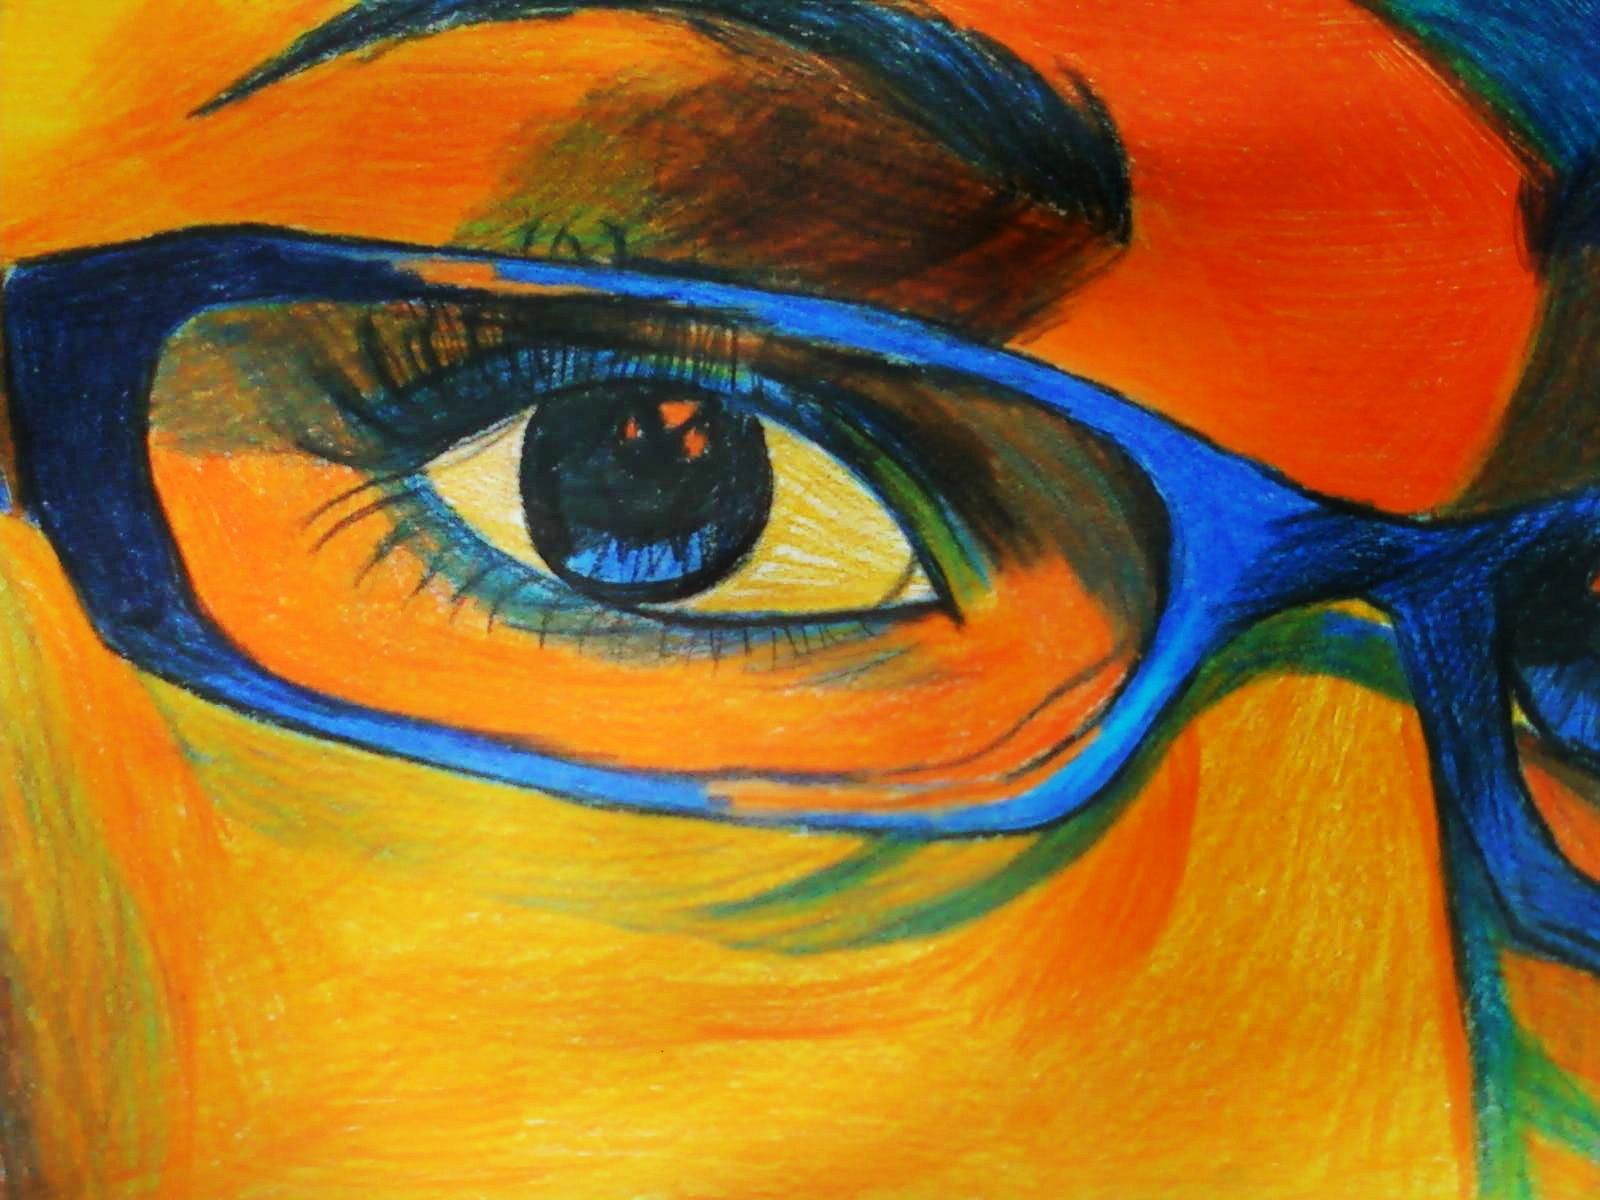 Orange from my pov v artwork in orange images for Artist canvas paint color